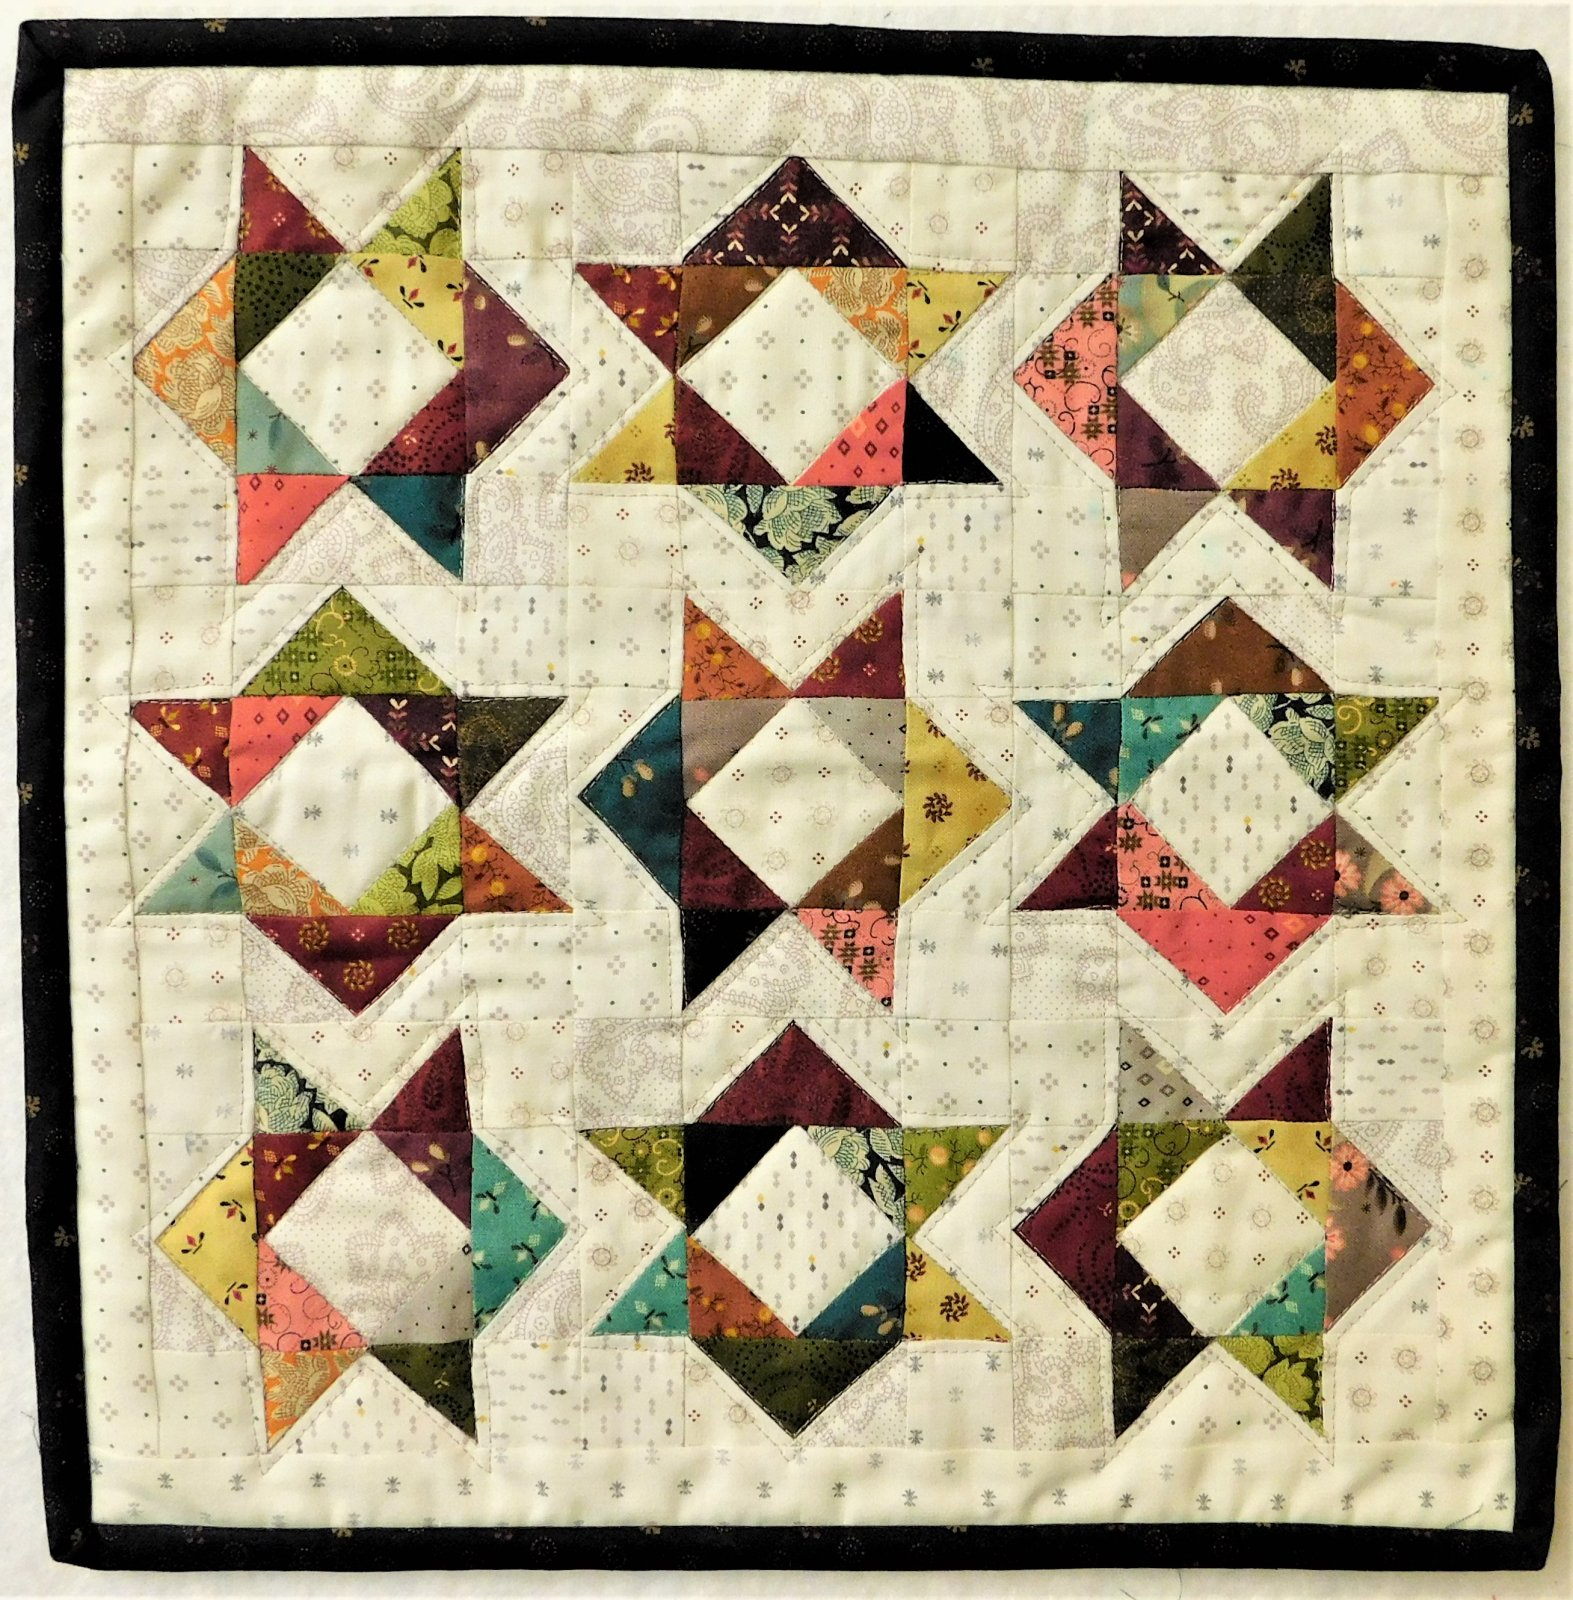 Simple Whatnots 10 - In and Out Quilt Kit - 14 x 14